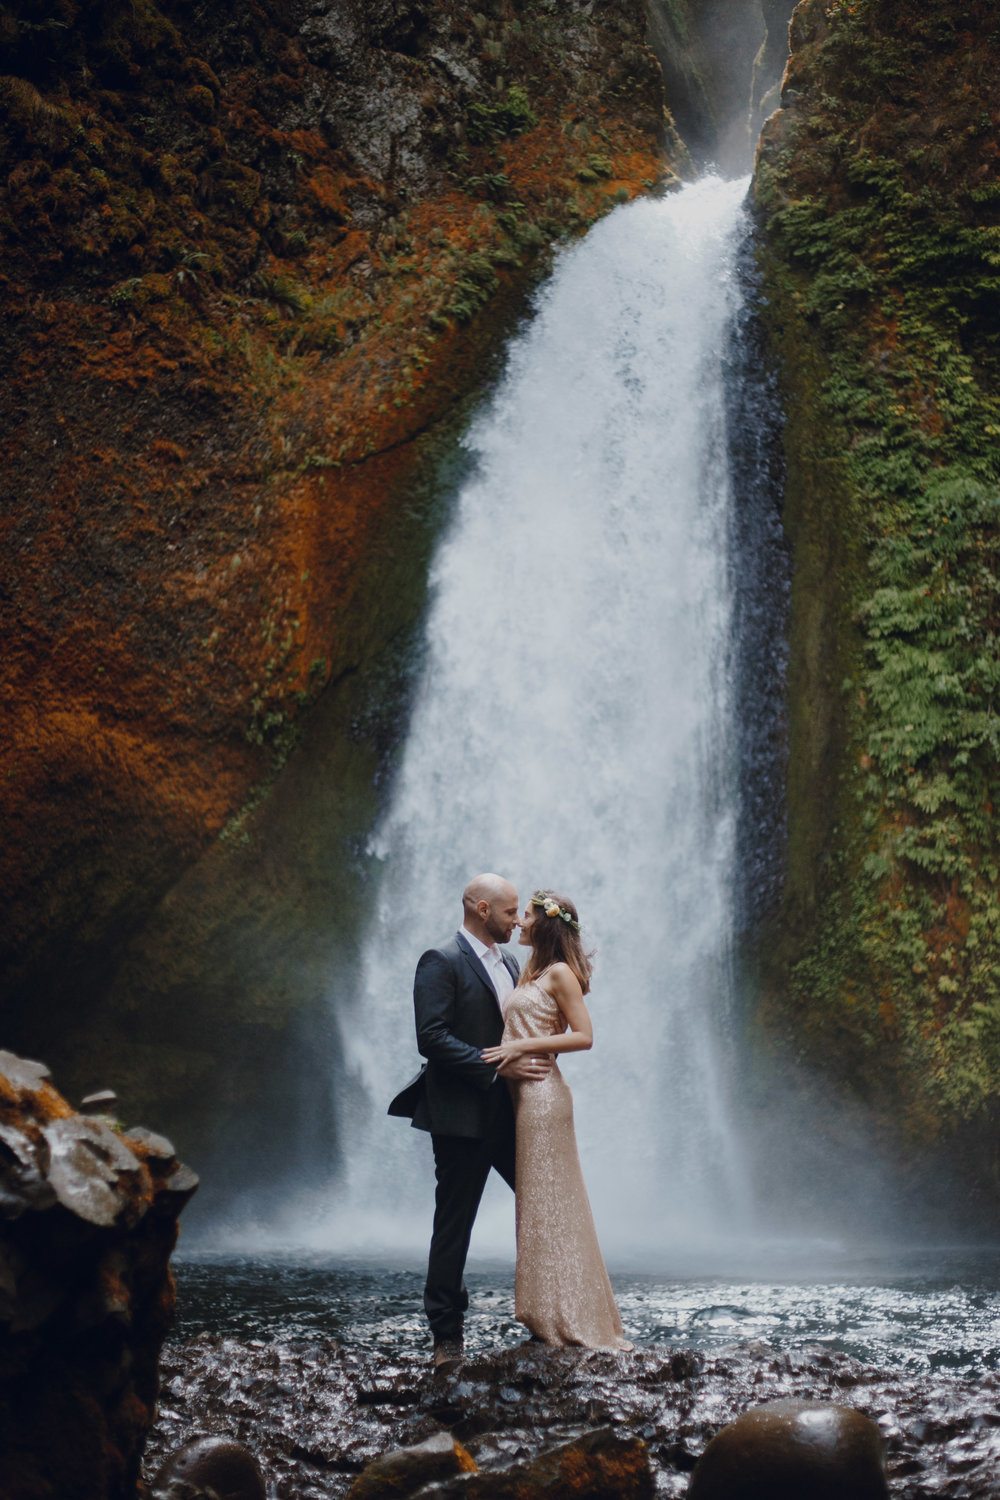 Couple getting married in front of the falls.